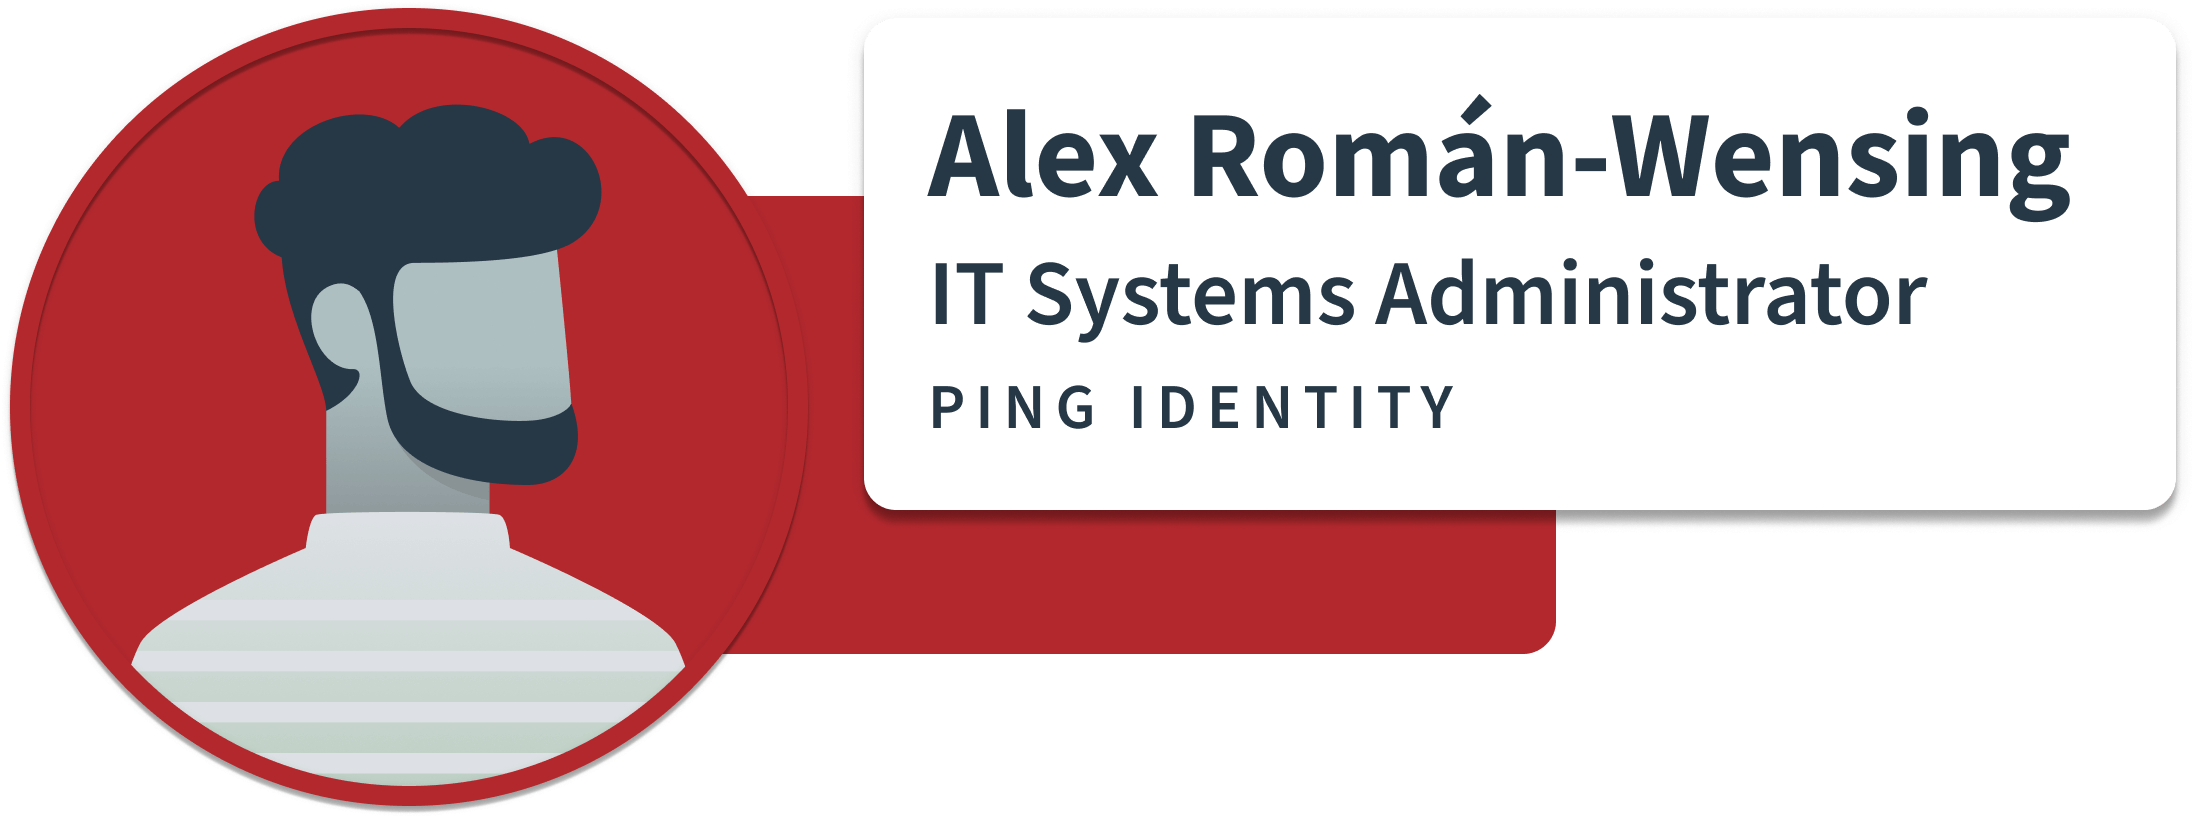 IT System Administrator at Ping Identity Sift quote